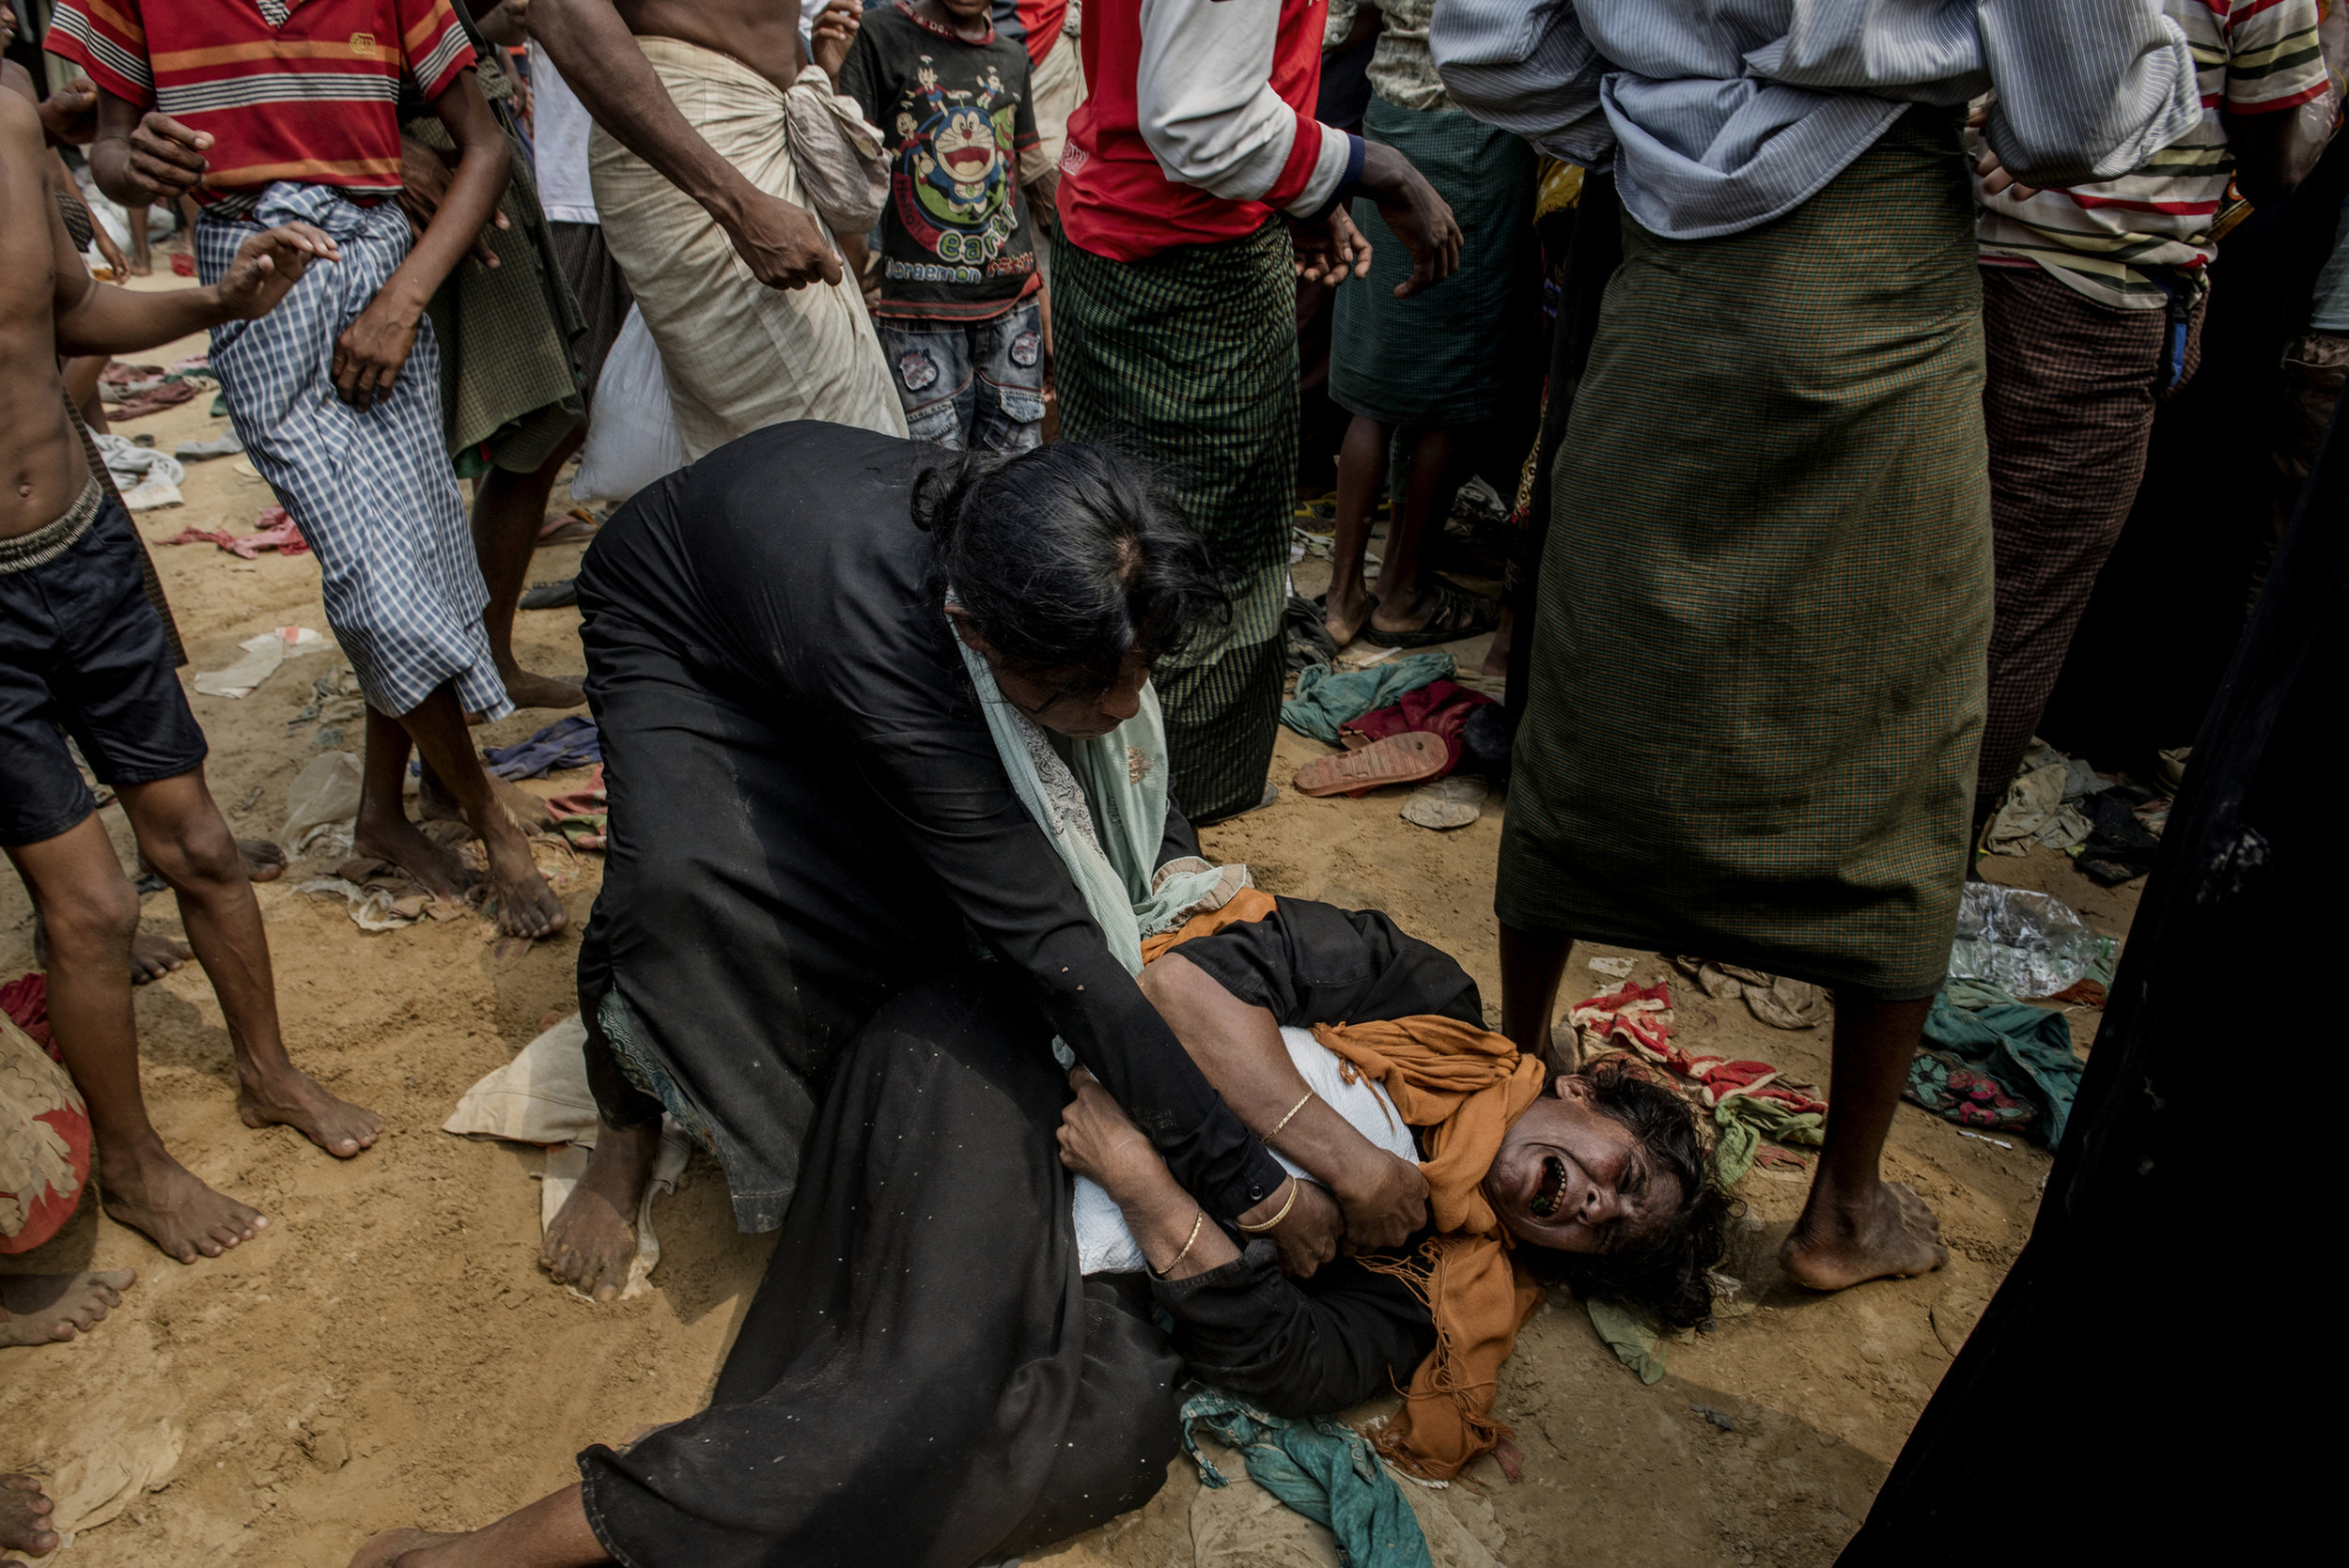 Two Rohingya women fight for a rack that was thrown from a truck with auxiliary shipments. There is a great lack of food and supplies in refugee camps.Edit